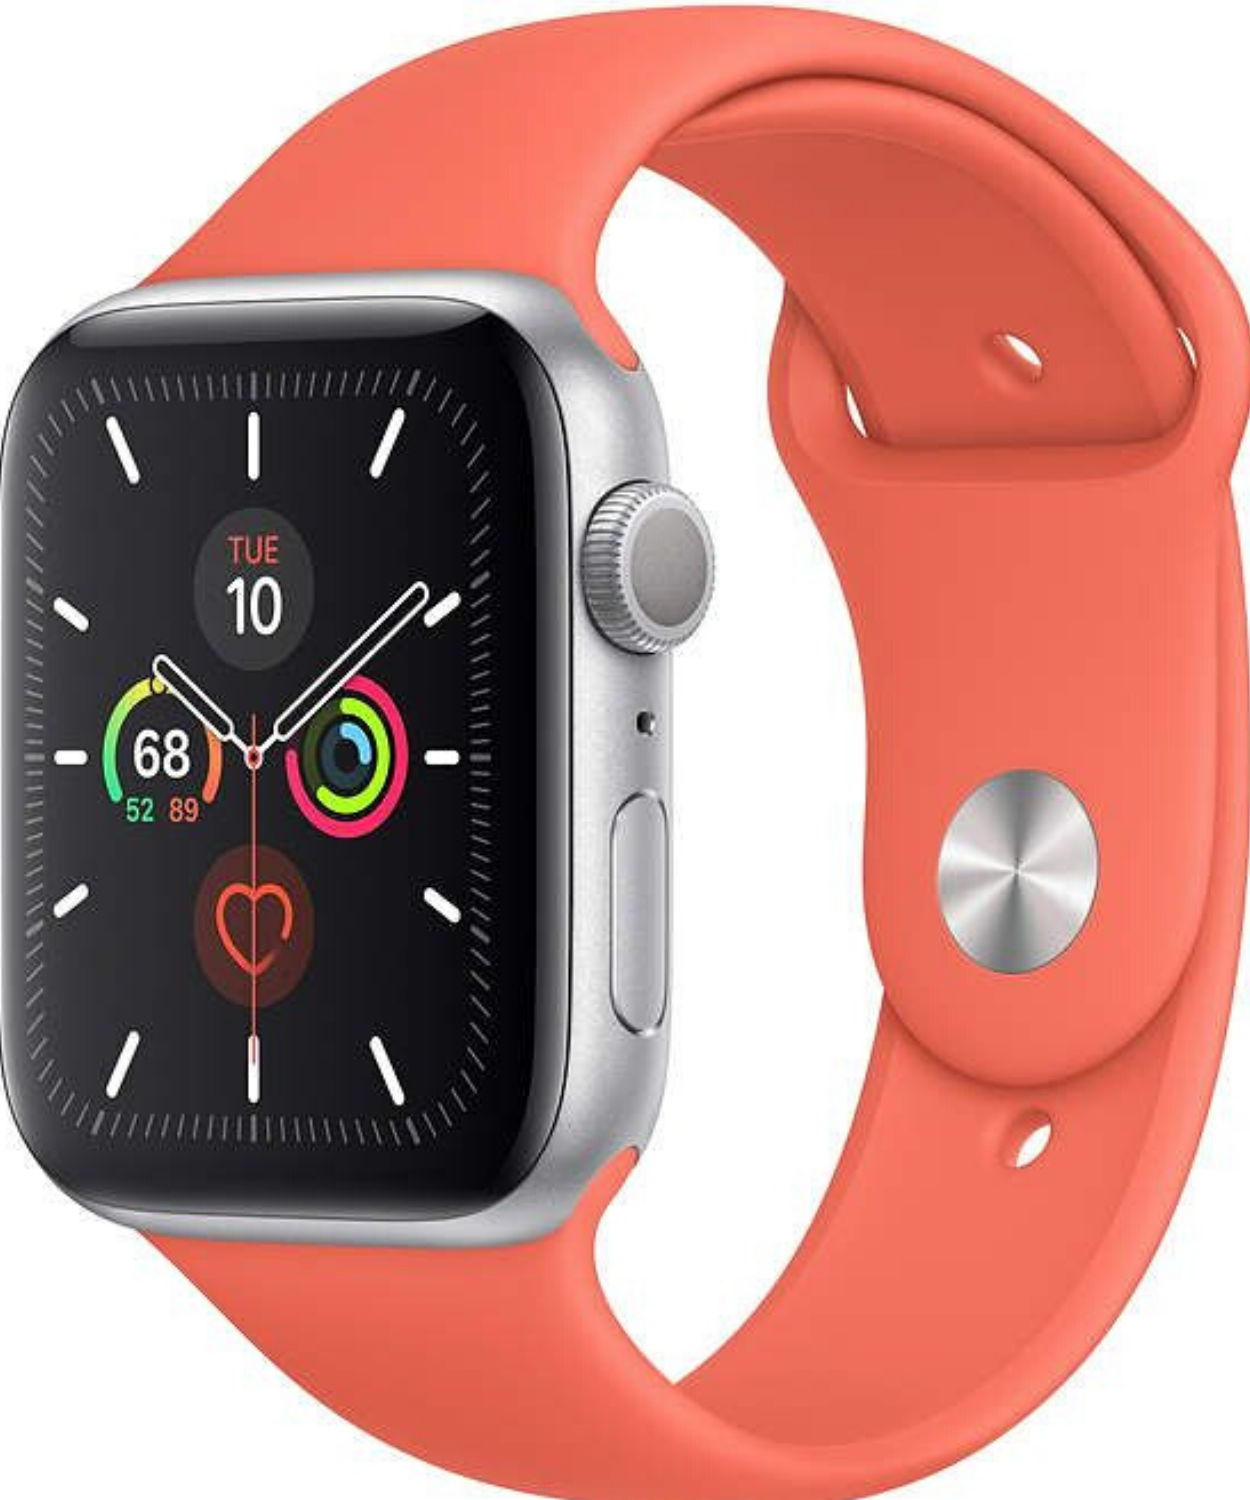 Silicone Strap For Apple Watch Apple Watch Apple Watch Series Watch Bands